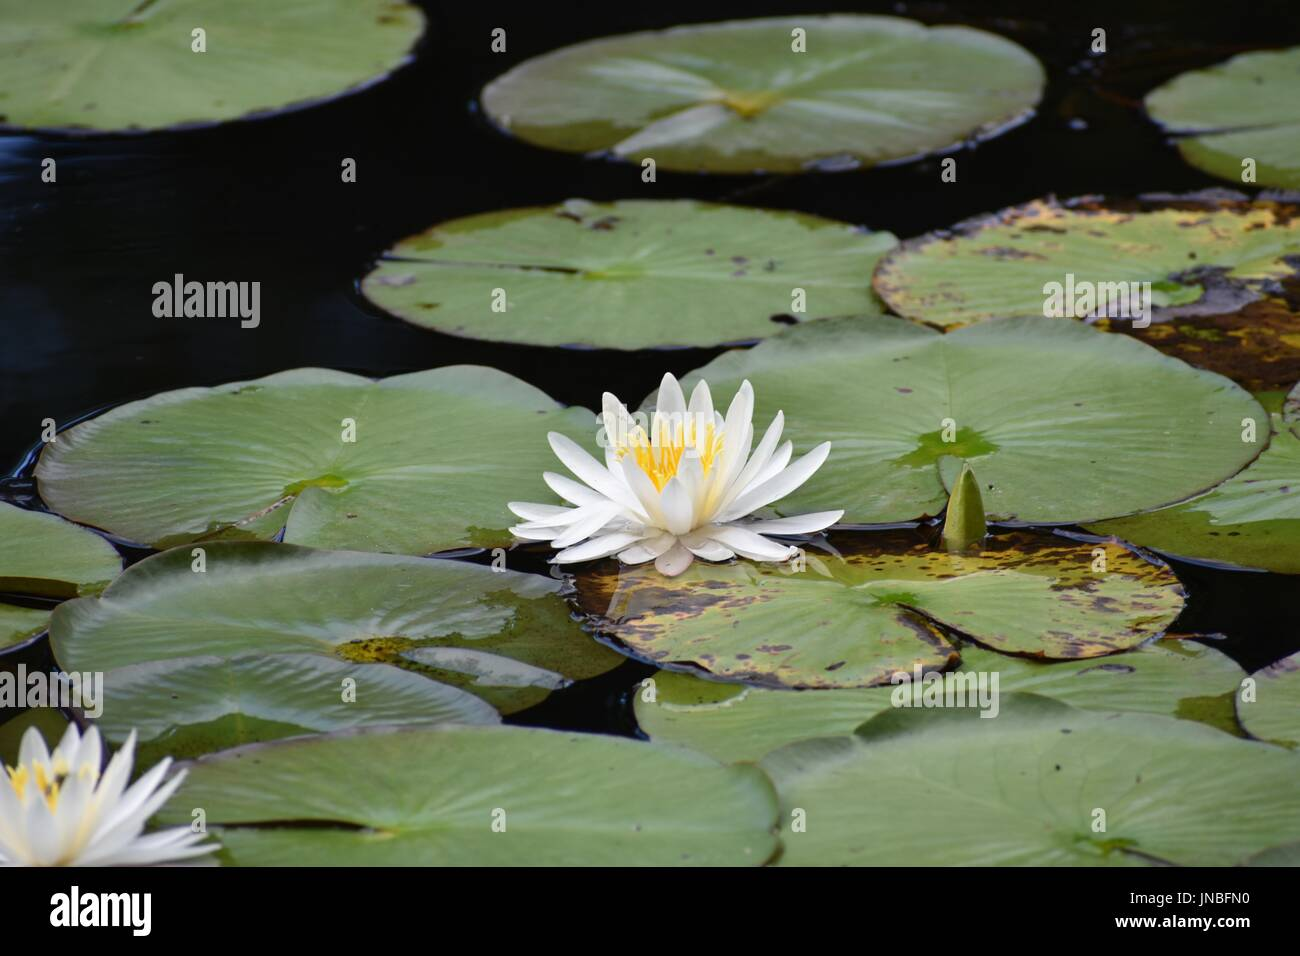 White Lily Flower On A Garden Pond With Lily Pads Plants And White